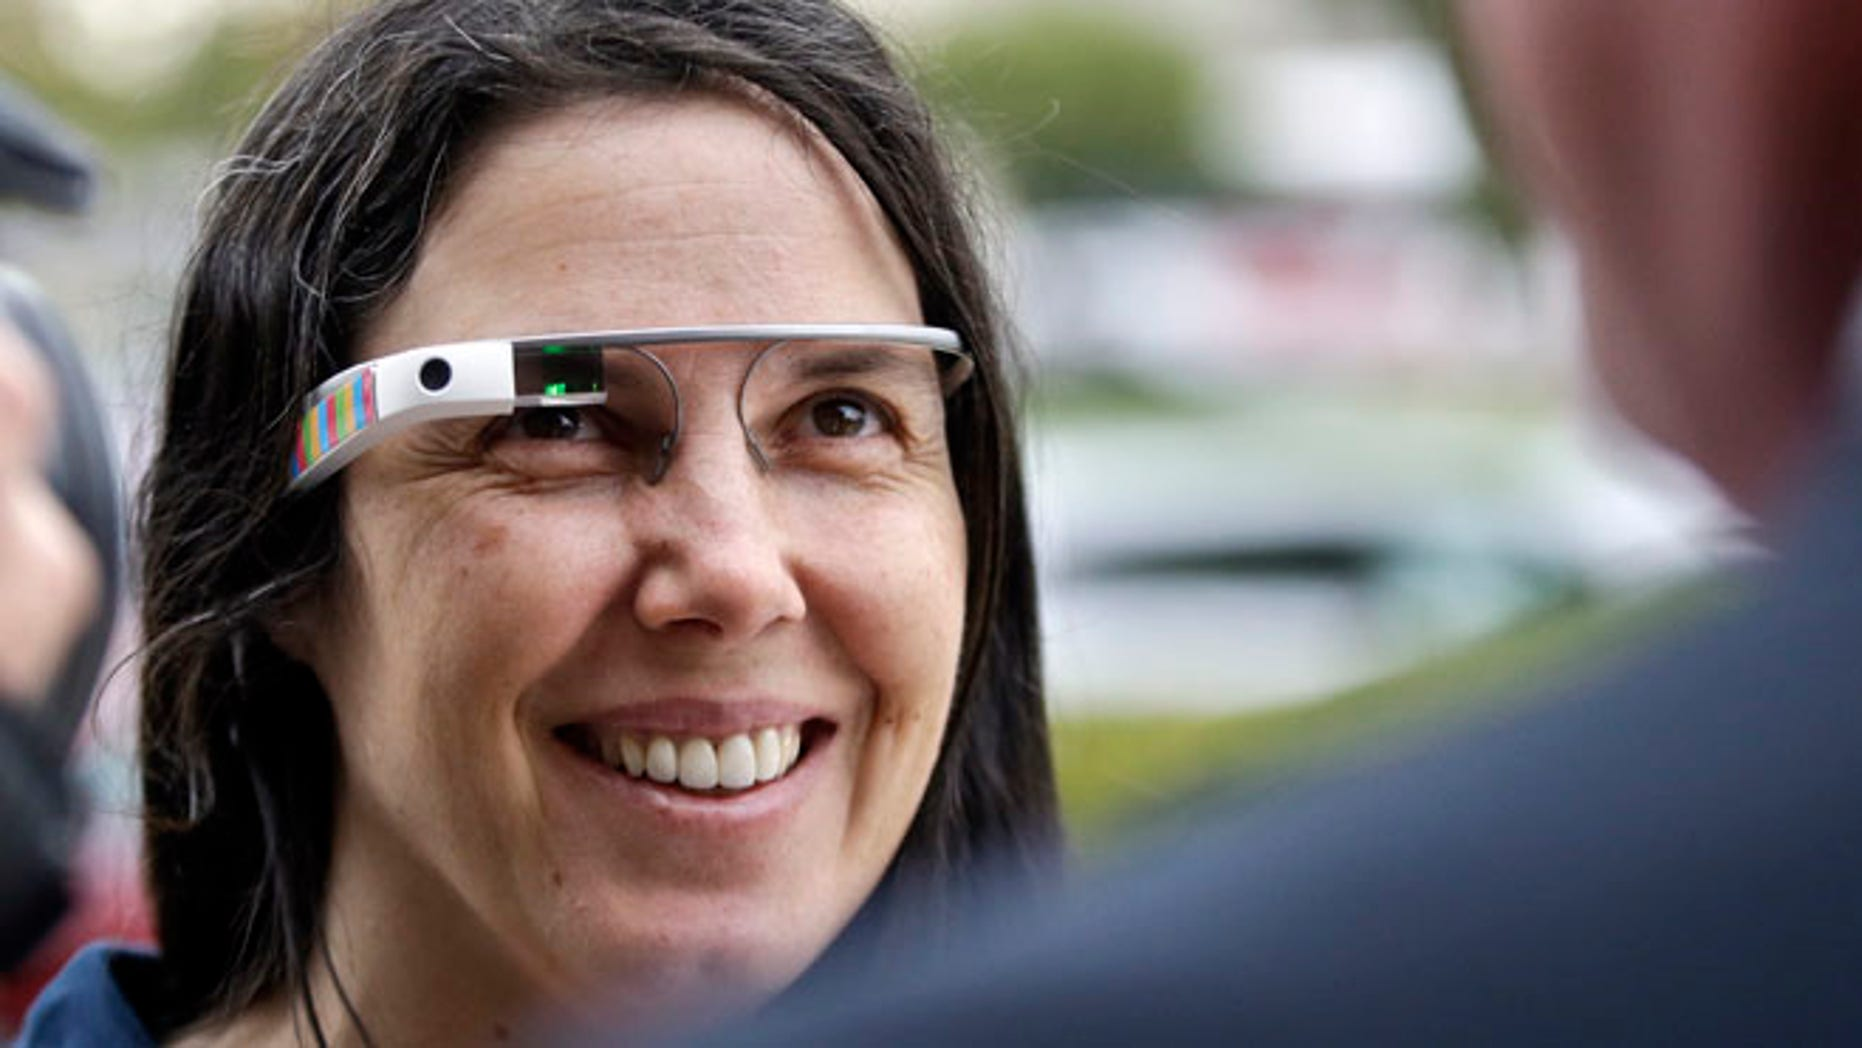 Cecilia Abadie wears her Google Glass as she talks with her attorney outside of traffic court in this Dec. 3, 2013 file photo taken in San Diego. The California woman believed to be the first cited for wearing Google's computer-in-an-eyeglass while driving says she was within her rights and violated no law. The case to be tried Thursday Jan. 16, 2014 in a San Diego traffic court could help shape future laws on wearable technology as it goes mainstream.